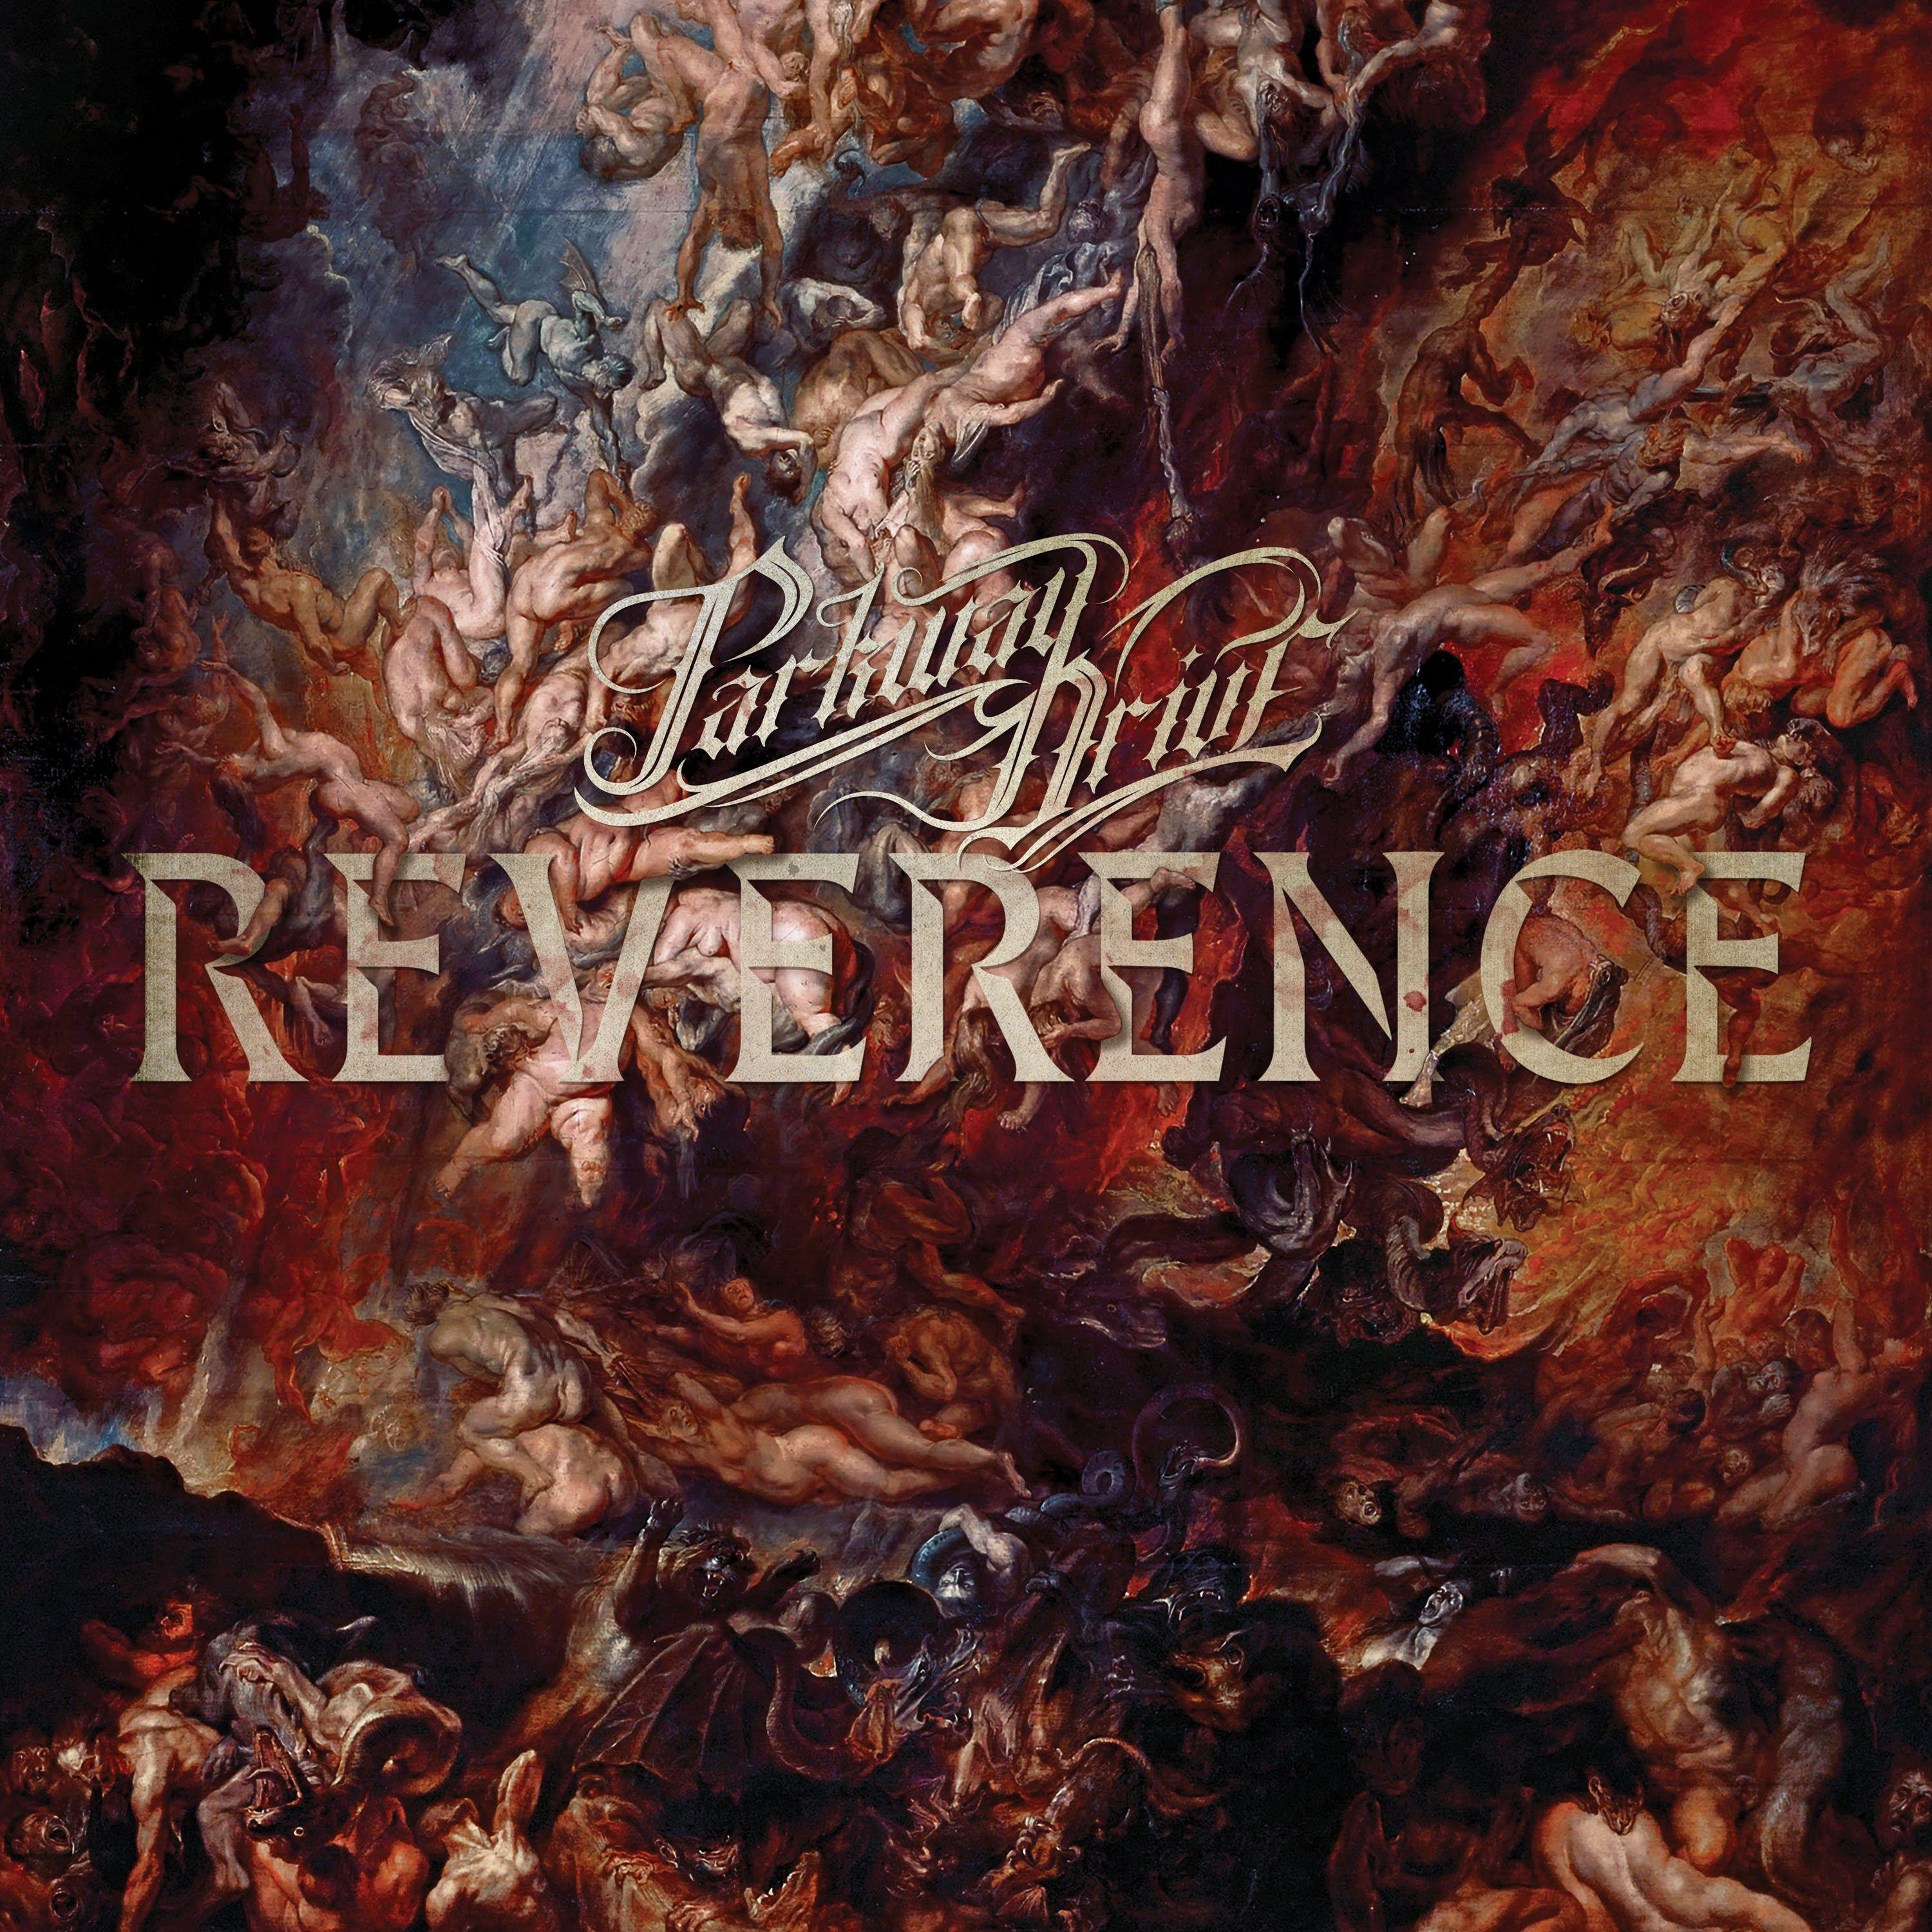 Parkway Drive have staked their claim for heavy metal ascendancy